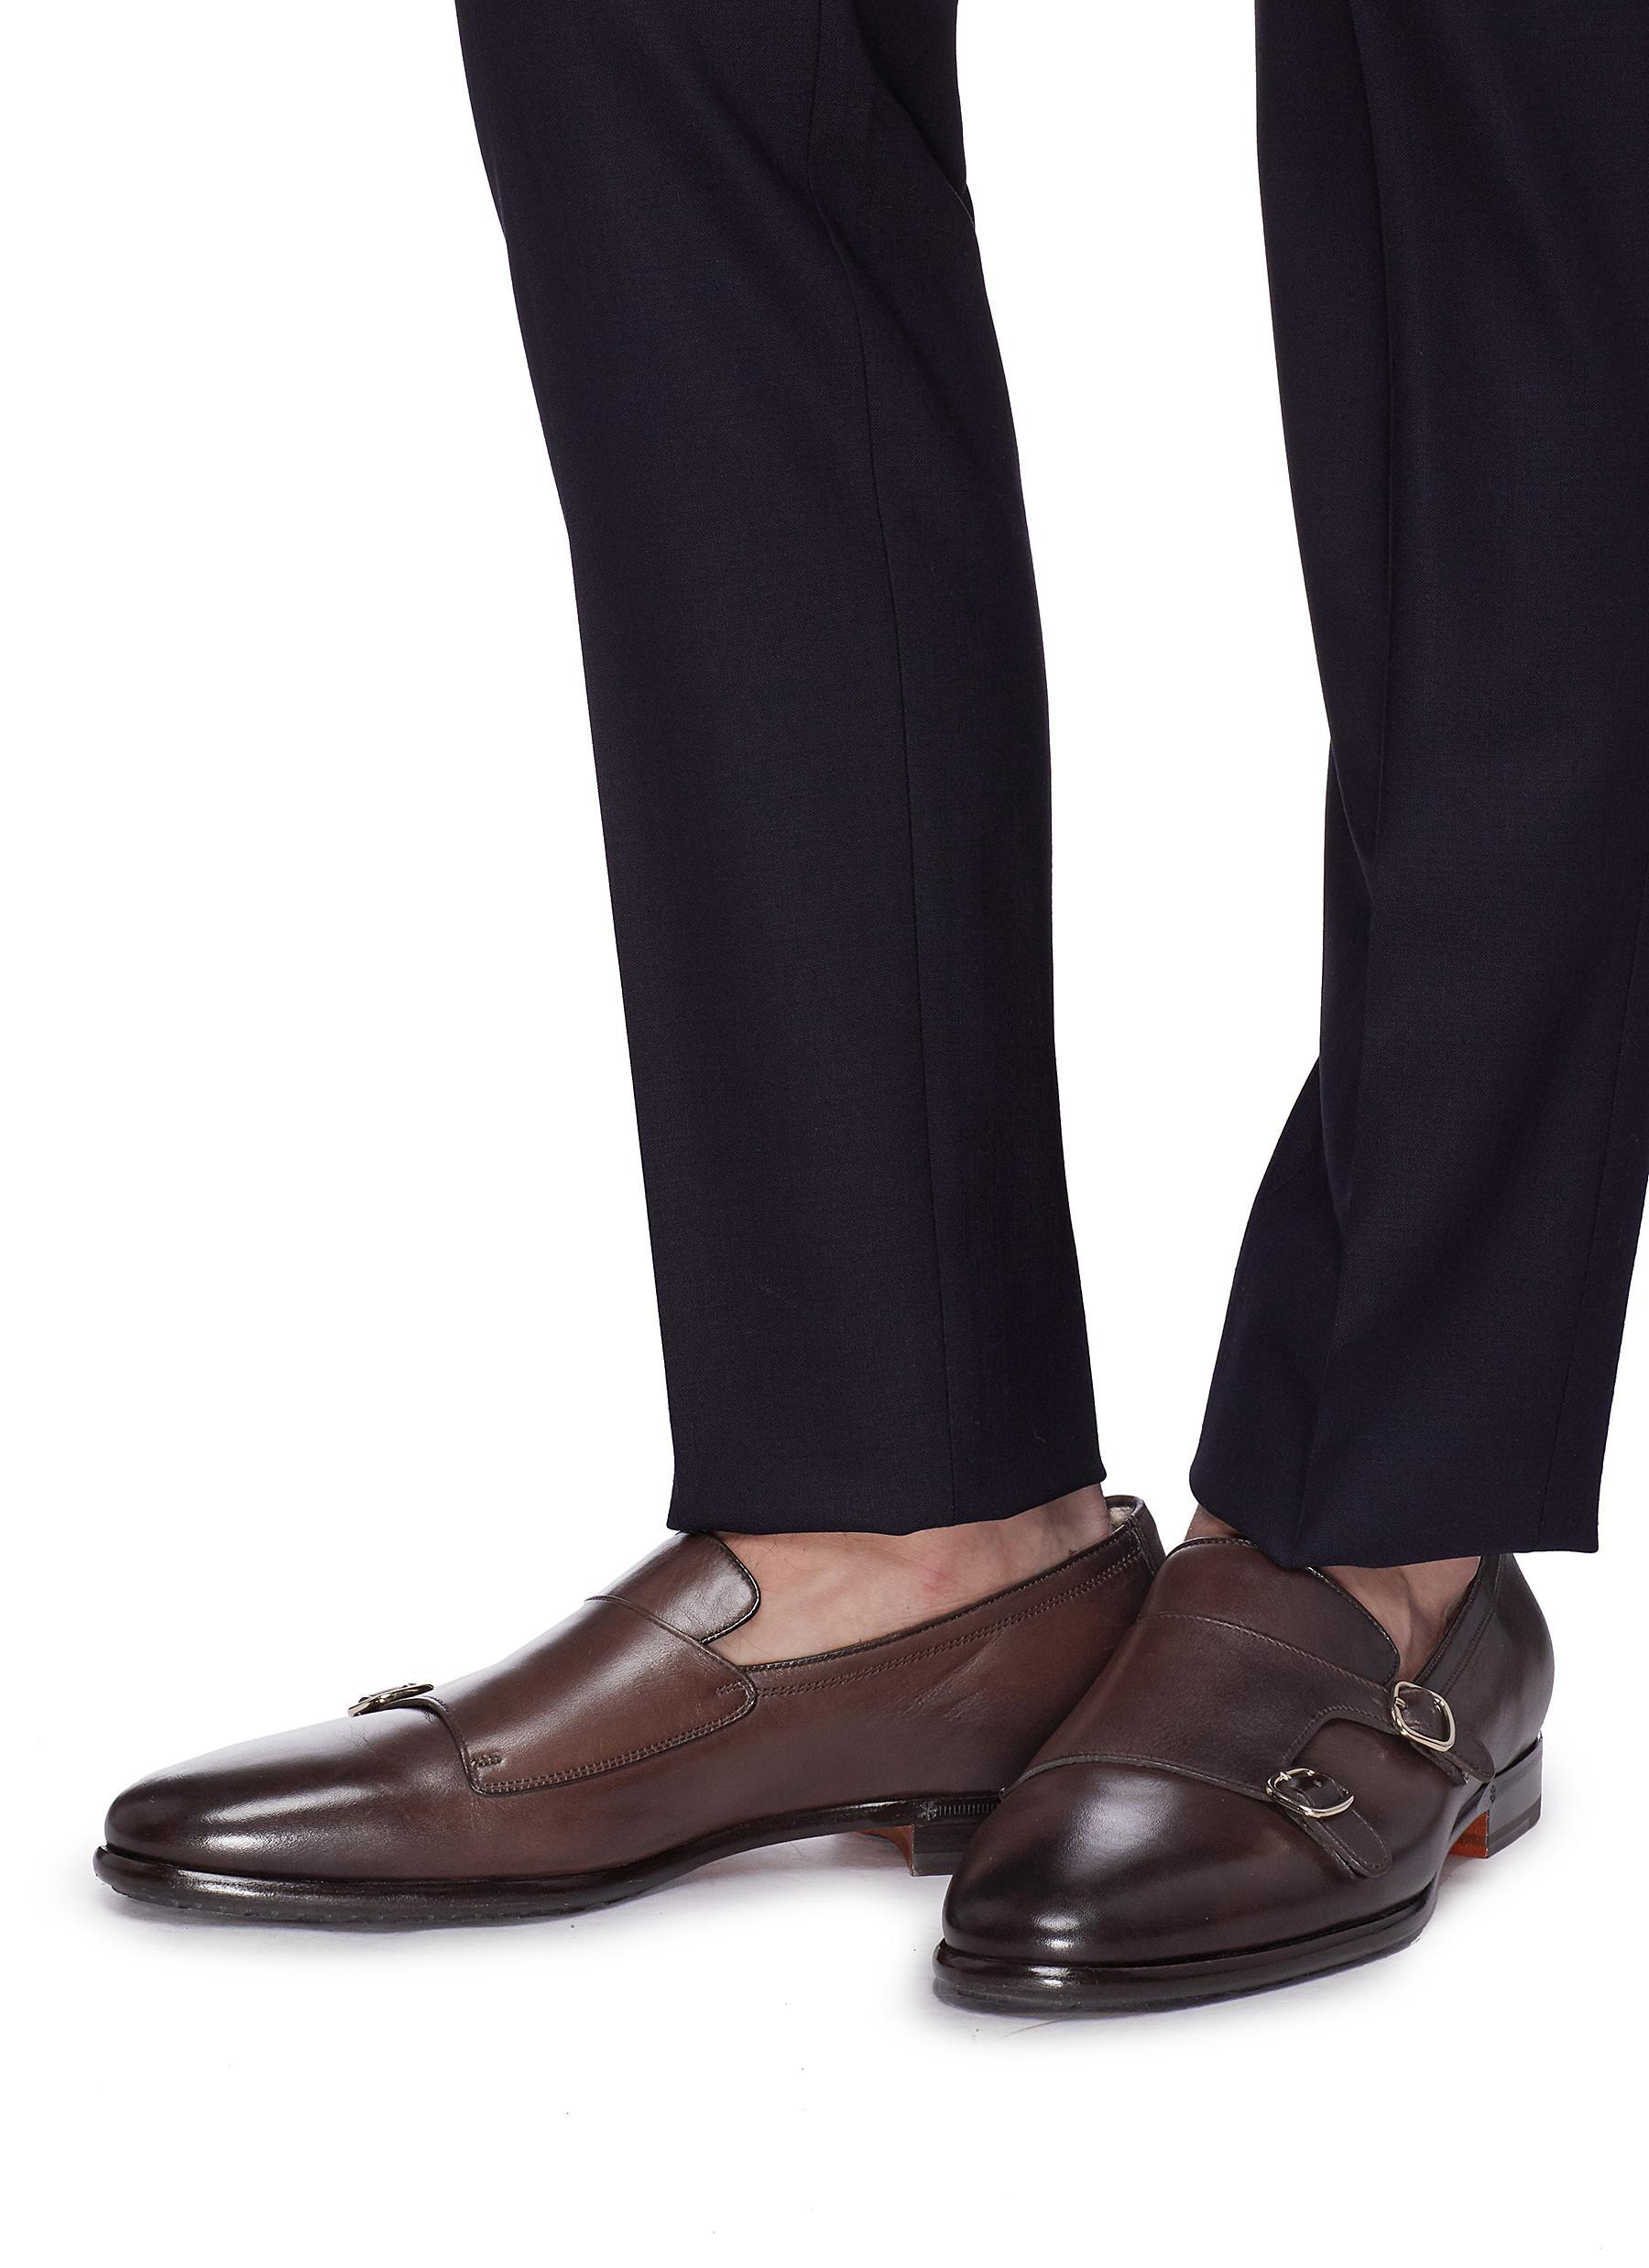 39d1390f6d0825 Lyst - Santoni Double Monk Strap Leather Loafers in Brown for Men